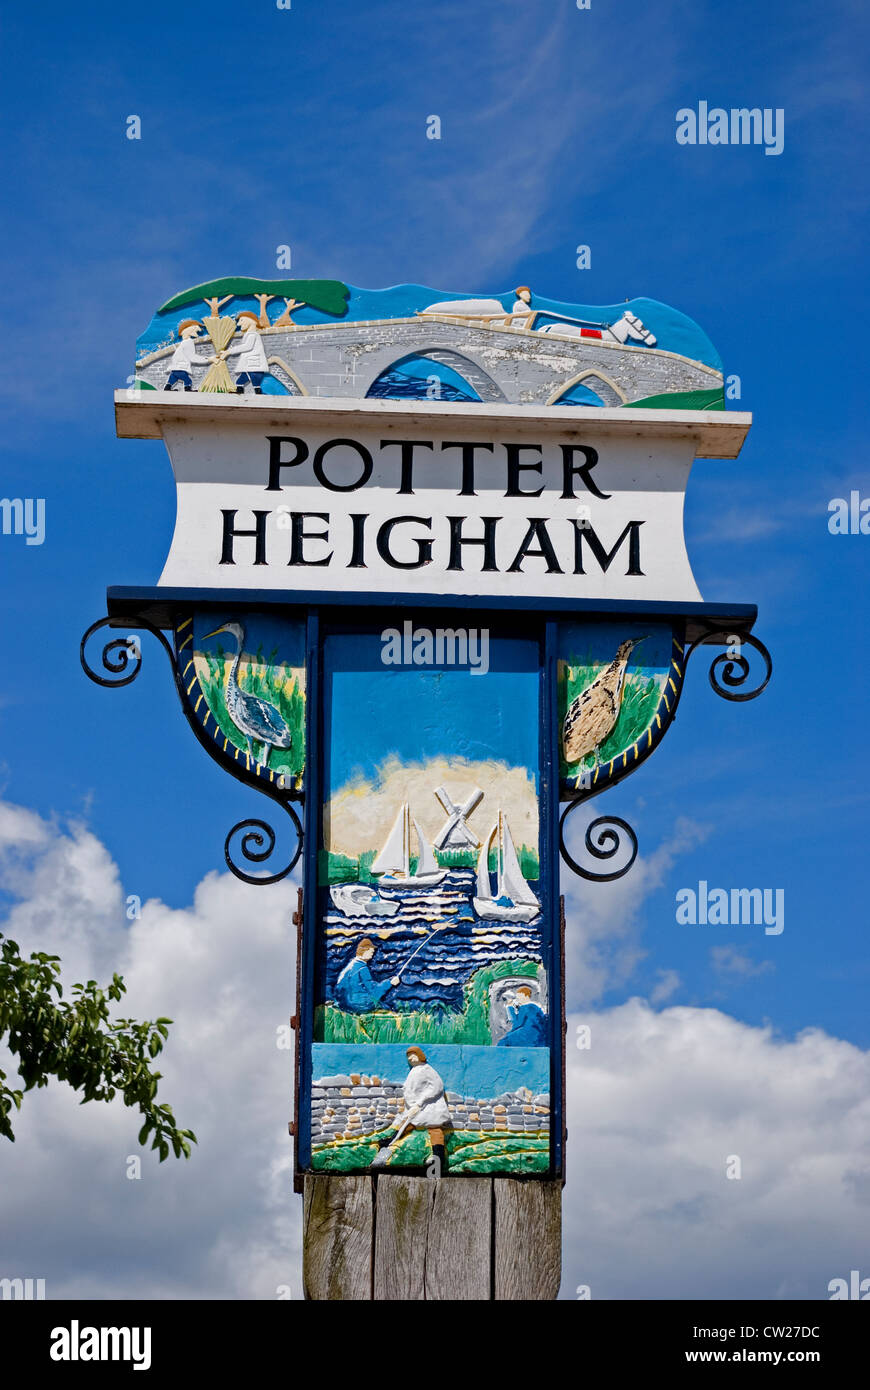 The Village Sign at Potter Heigham in Norfolk, which is one of the major boating centre's on the Norfolk Broads. - Stock Image